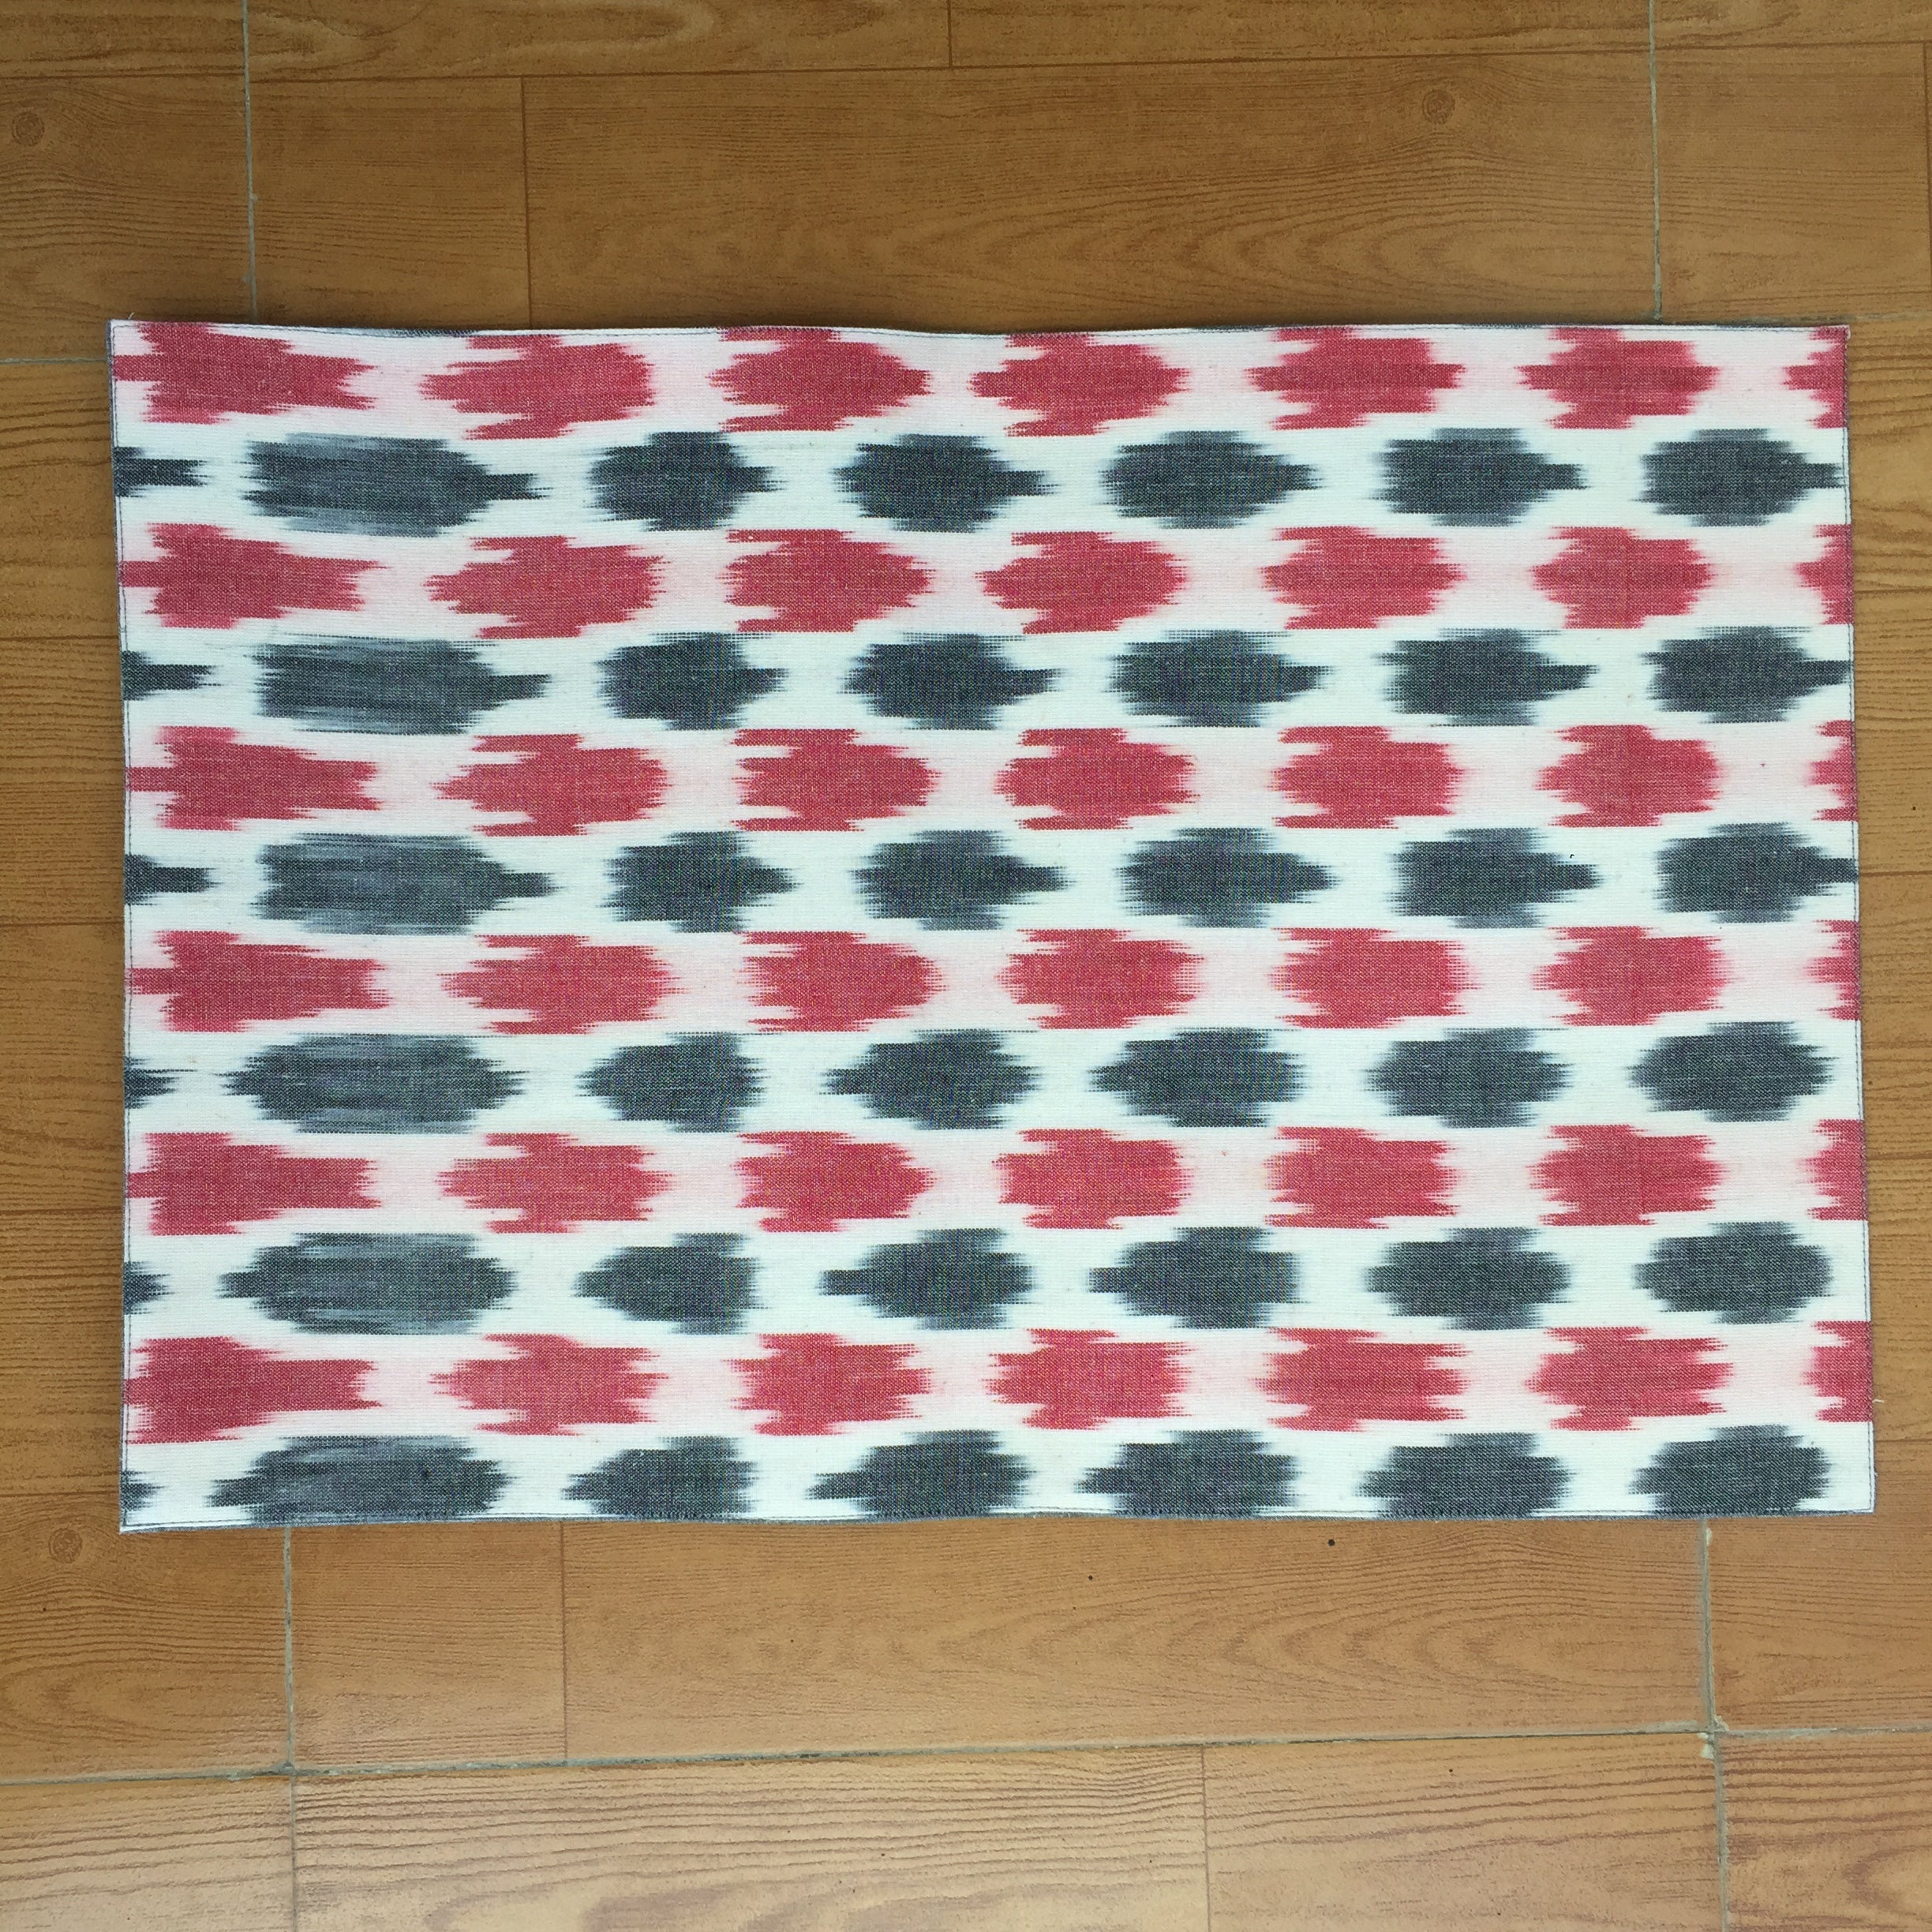 Red and Black Ikat Handwoven Cotton Mat